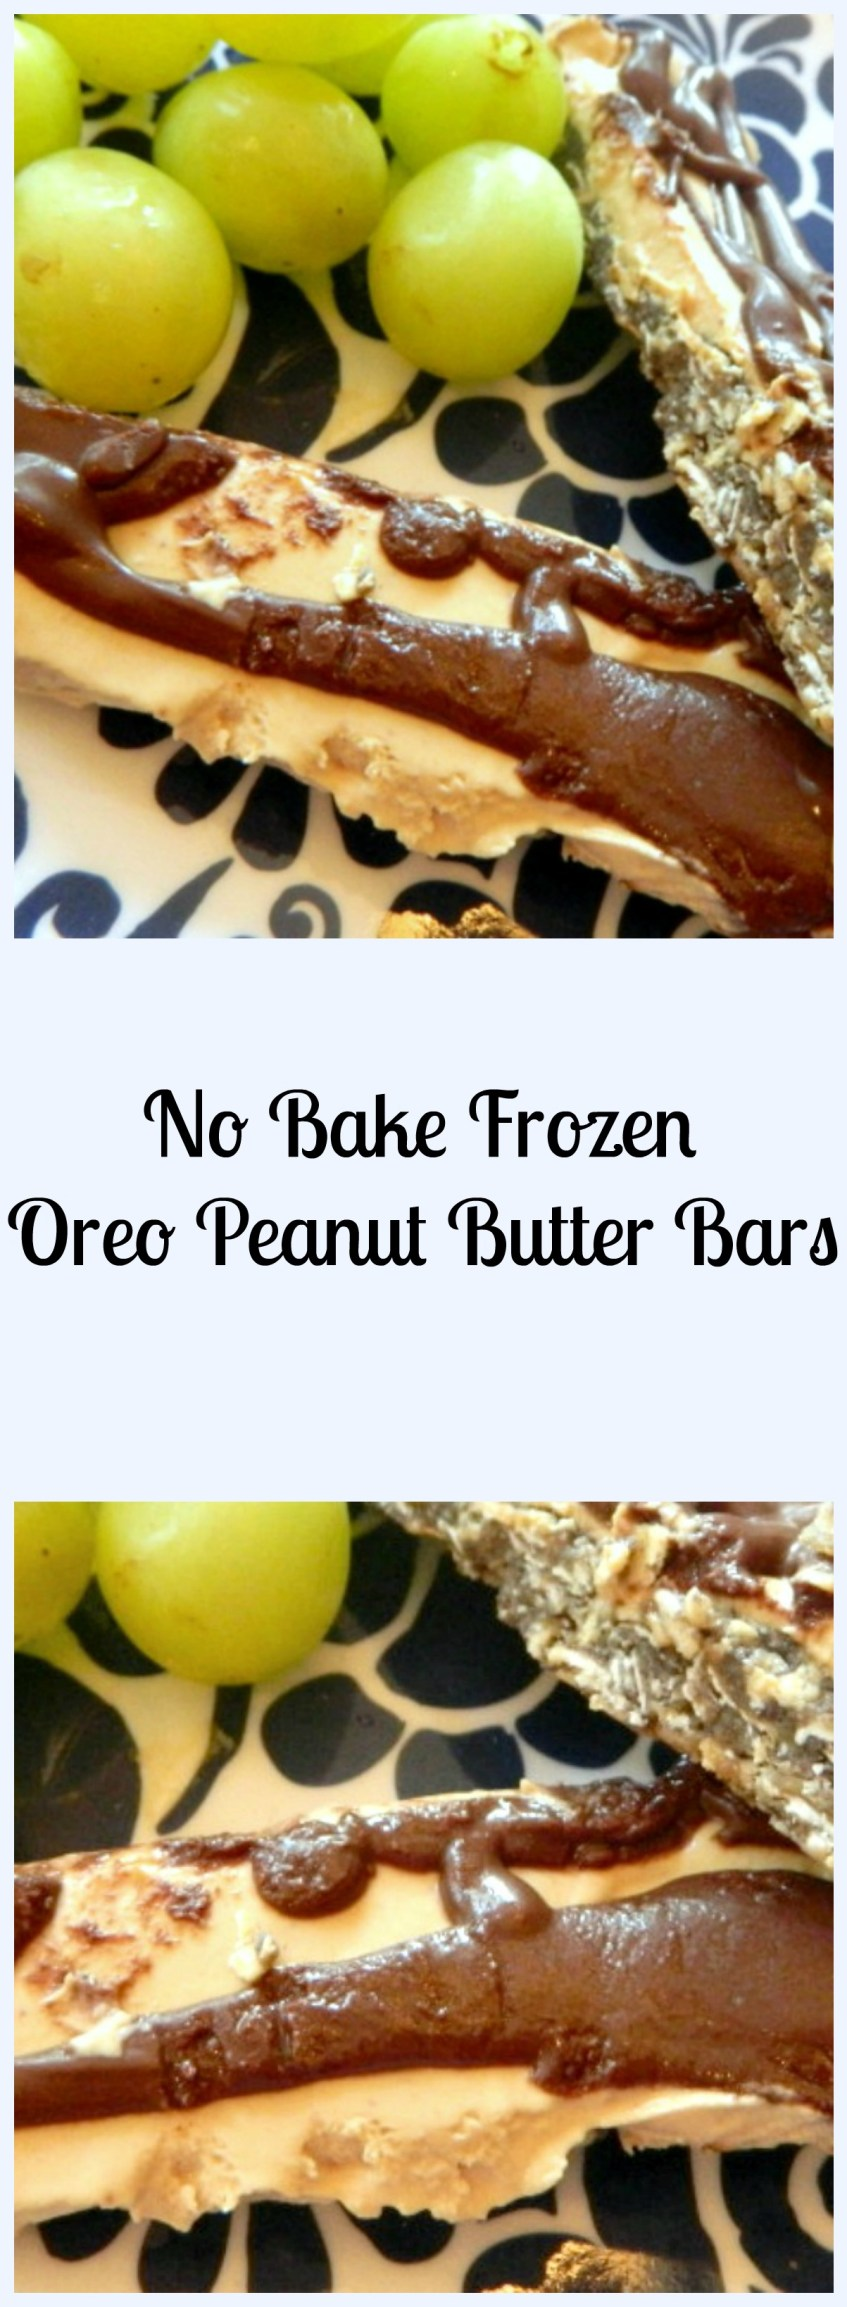 Can Natural Peanut Butter Be Frozen